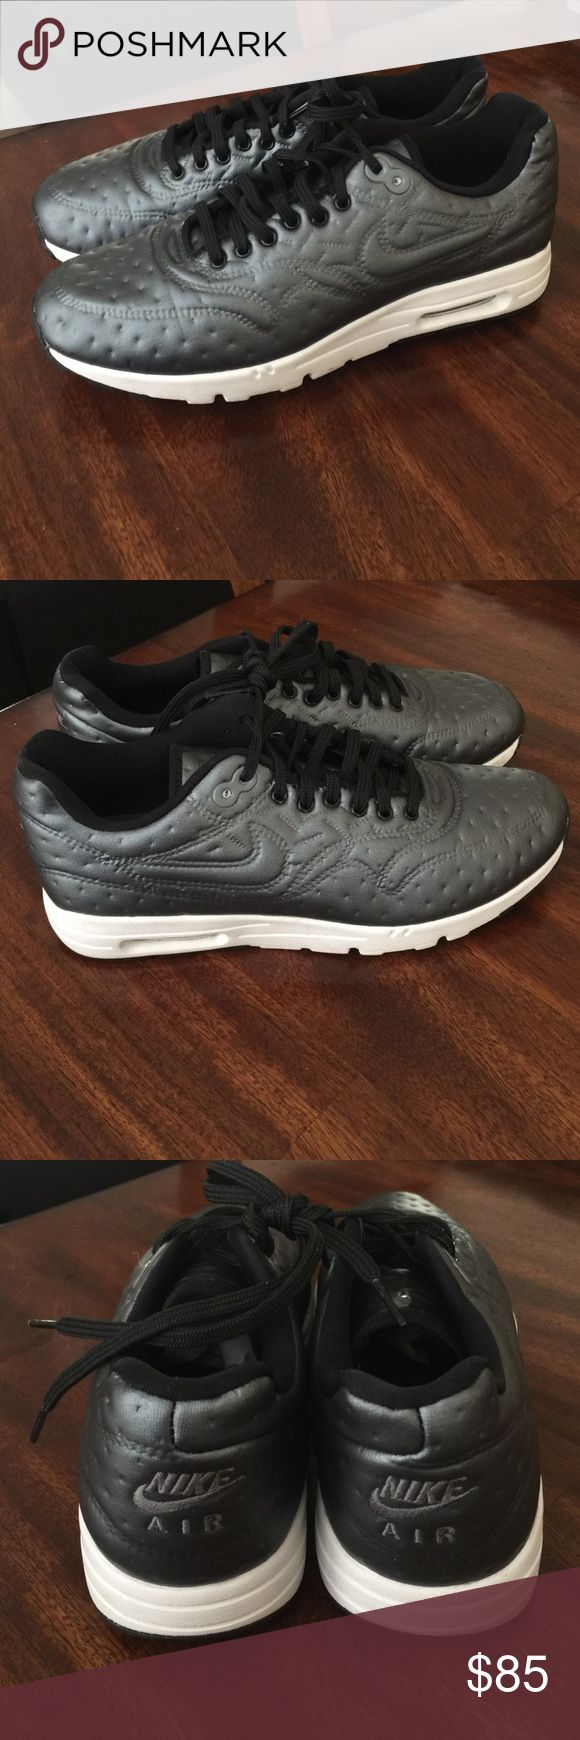 Nike air max 1 Nike air max 1 ultra jacquard size 8 Nike Shoes Athletic Shoes